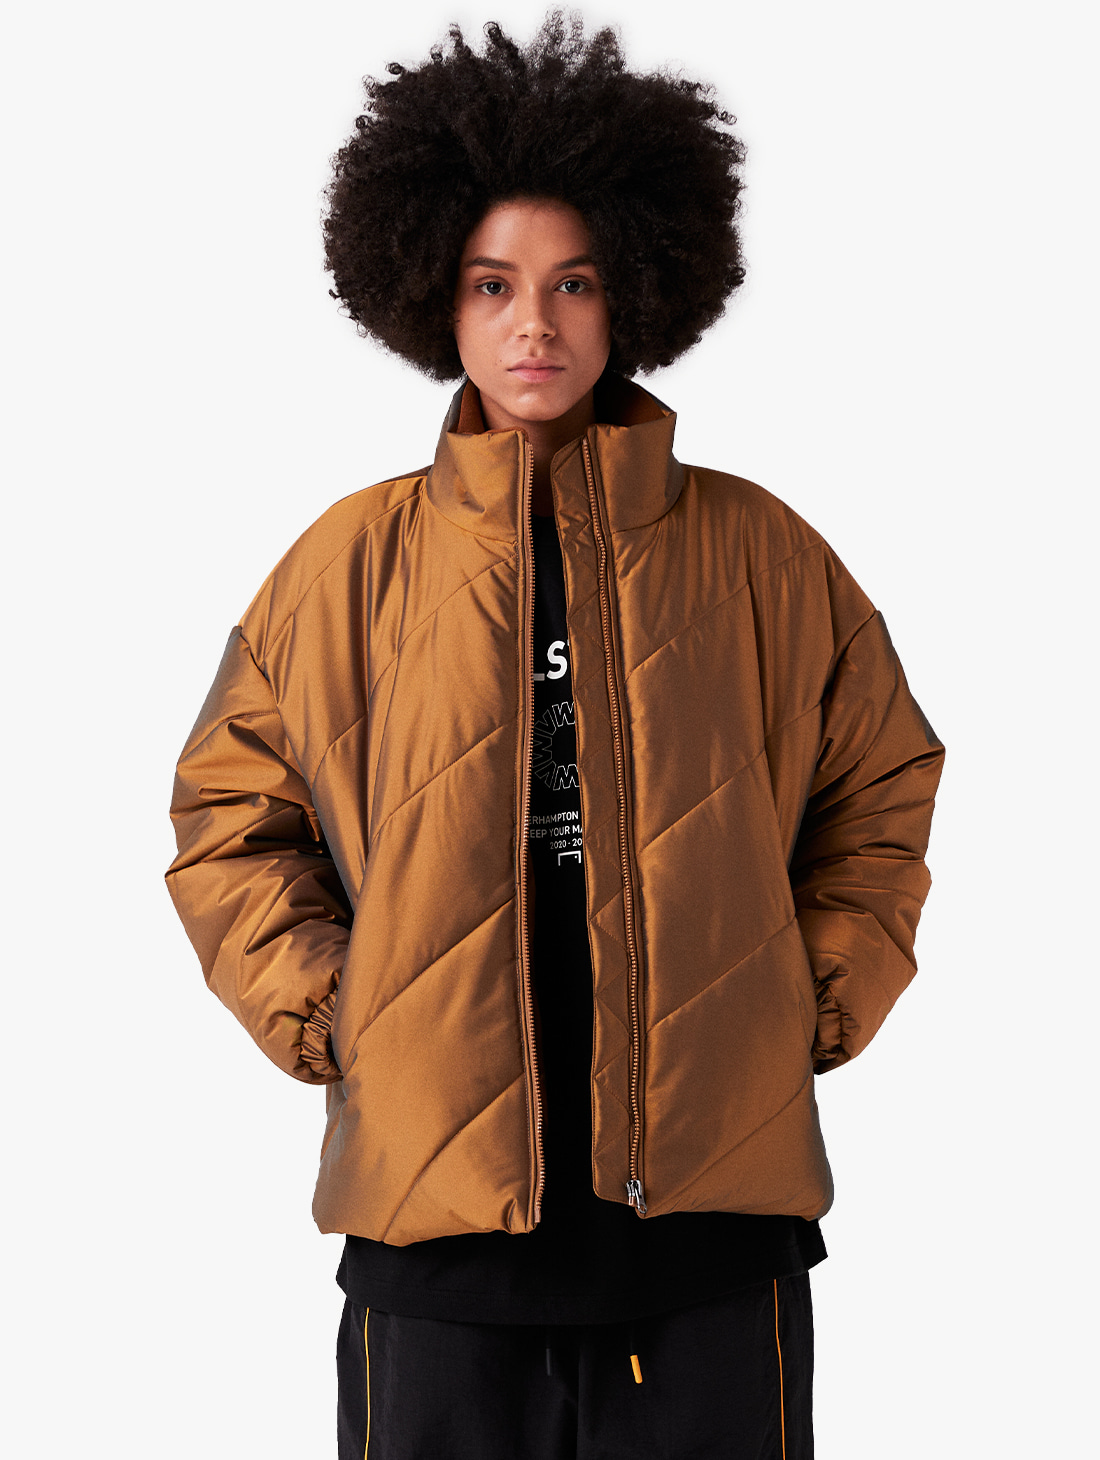 GOALSTUDIO [PRE-ORDER 10% OFF] WWFC DIAGONAL TWO TONE PADDED JACKET